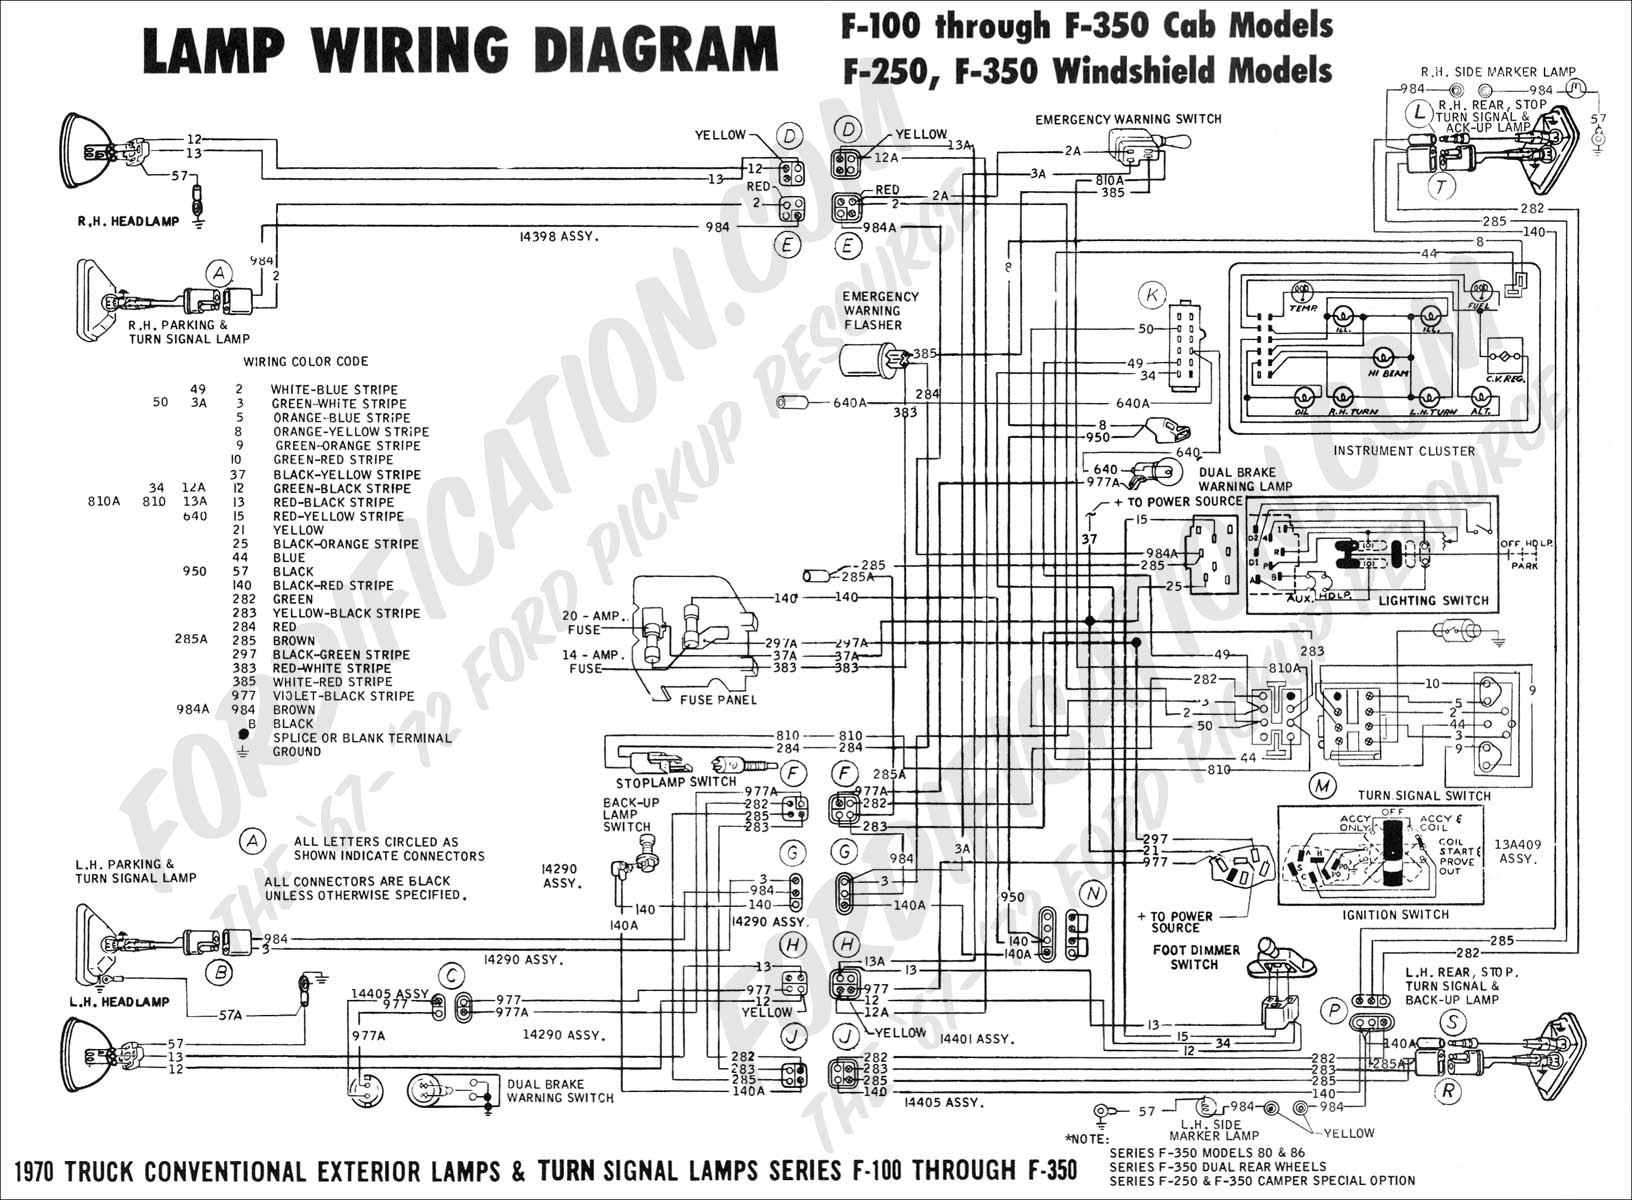 Brake Light Switch Wiring Diagram ford F700 Wiring Diagrams Additionally Dodge Under Hood Wiring Of Brake Light Switch Wiring Diagram